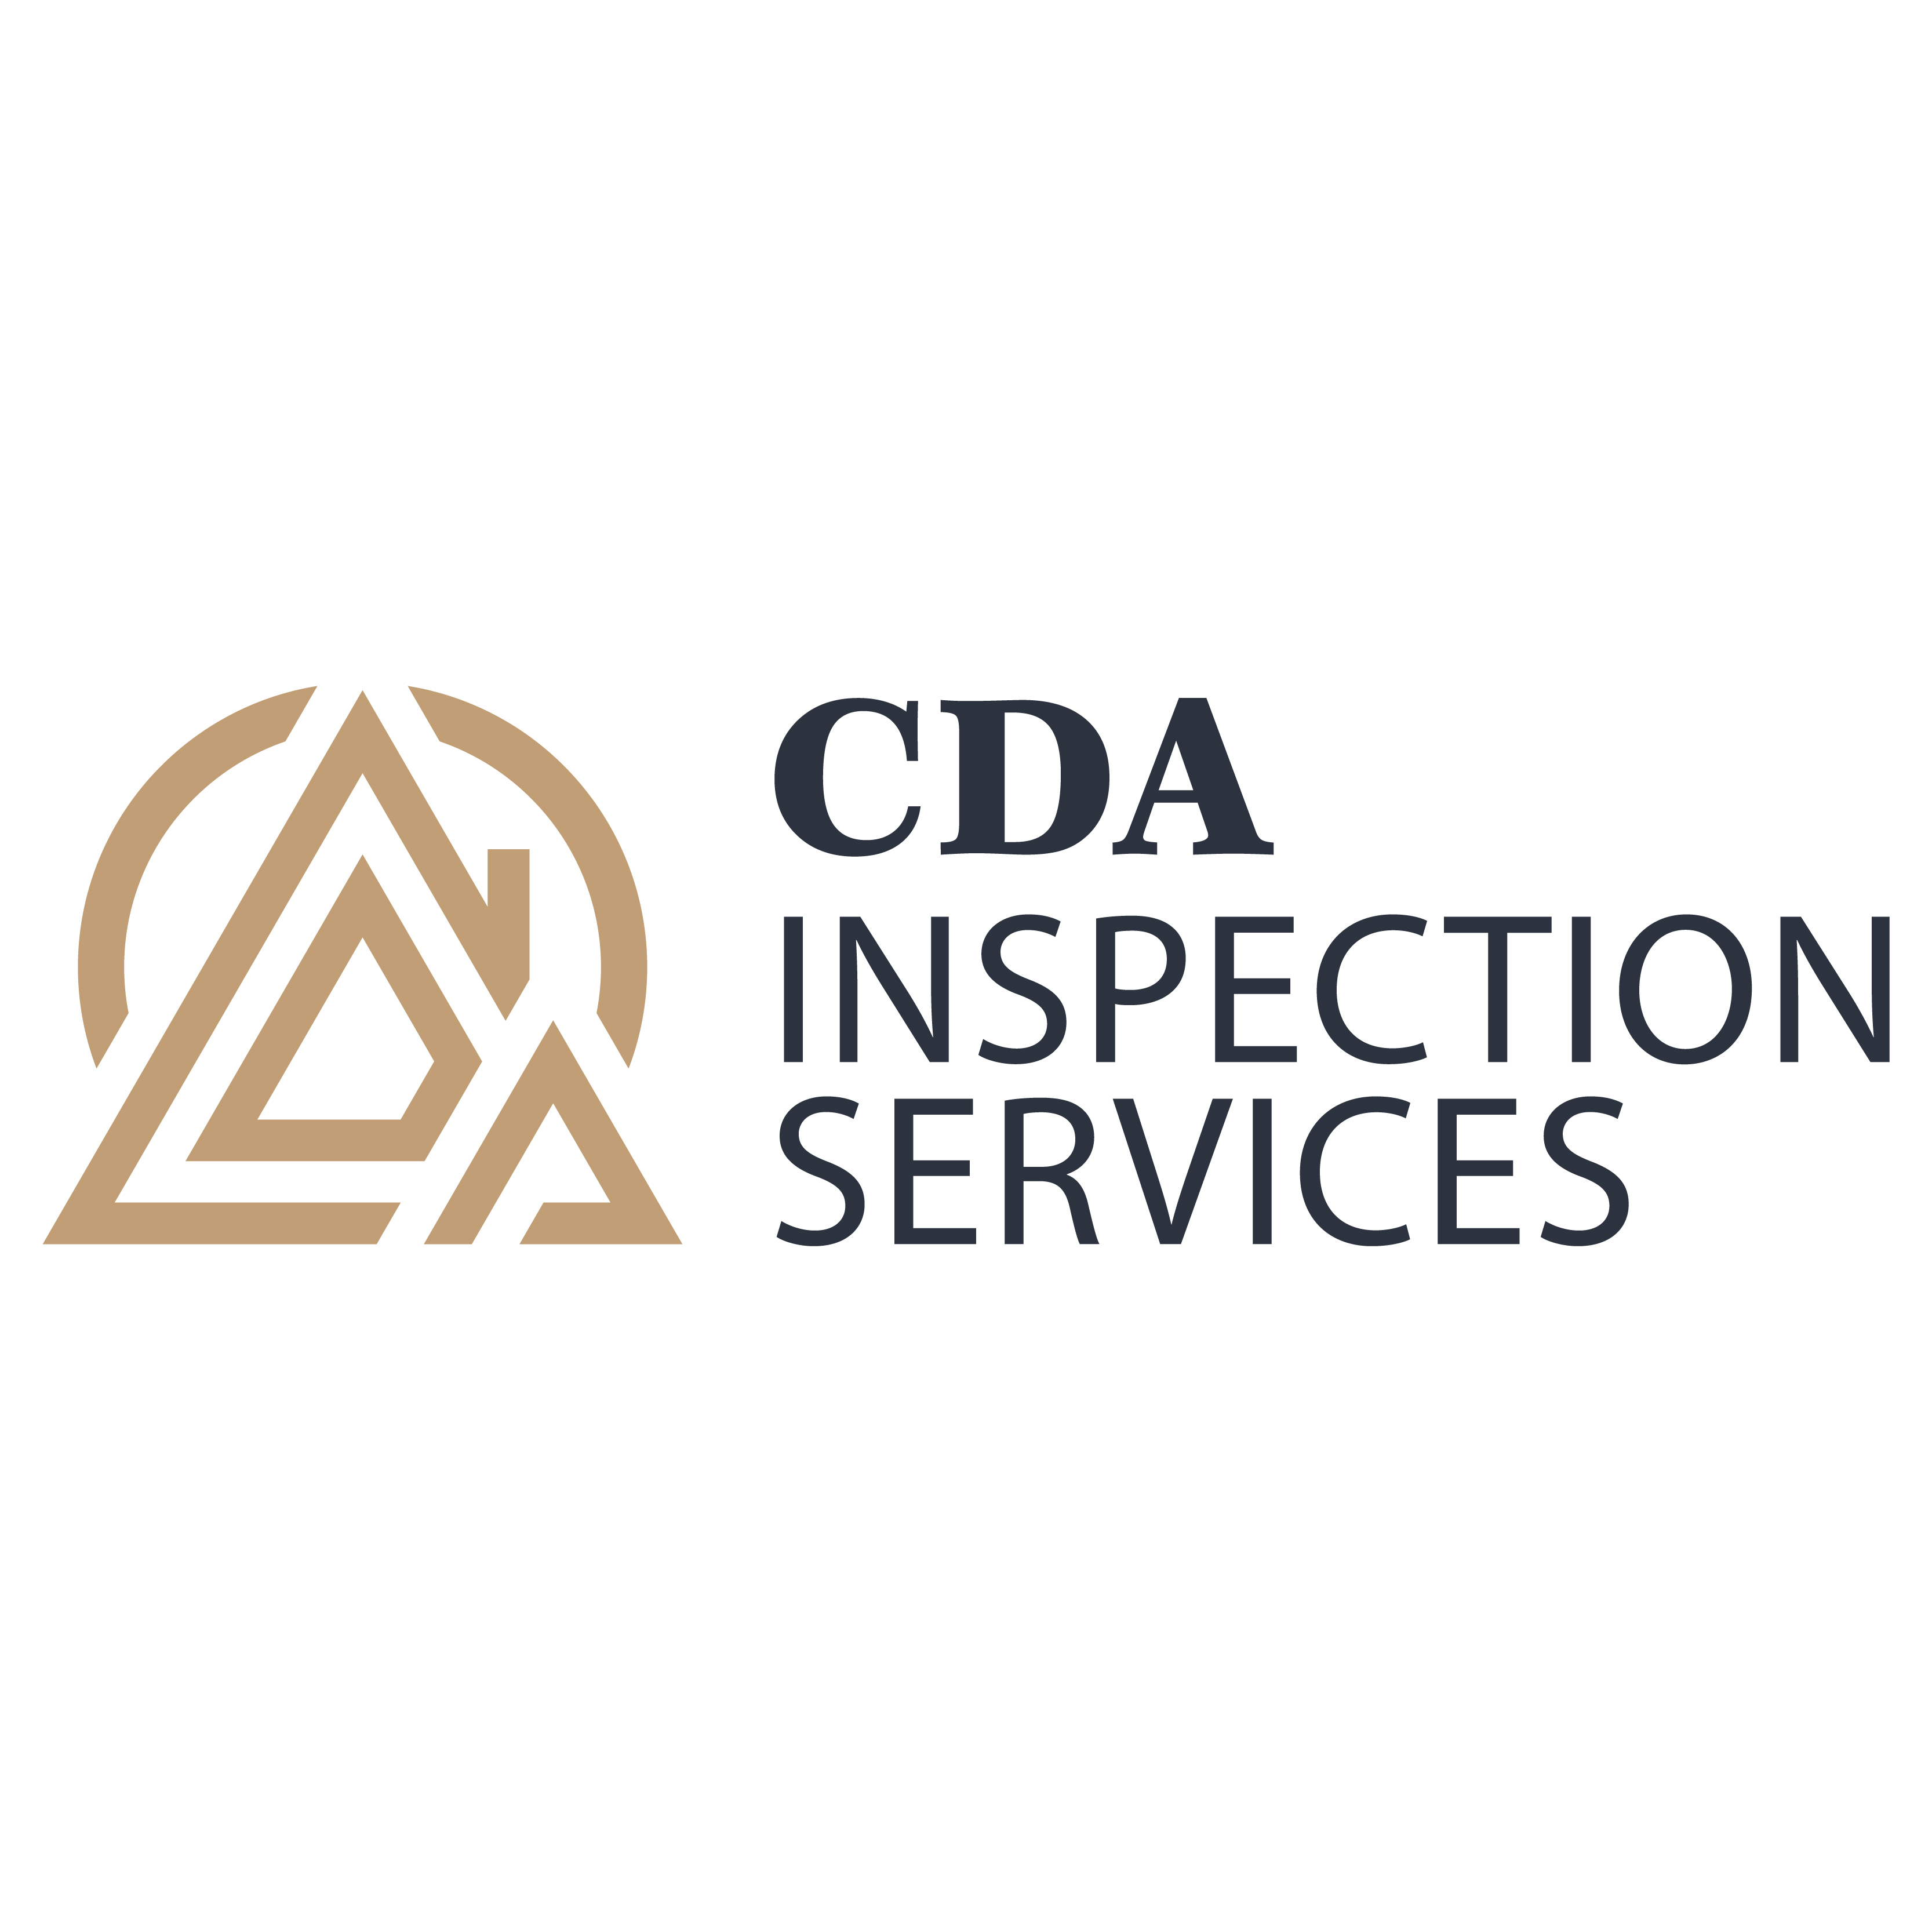 Cda inspection services 01